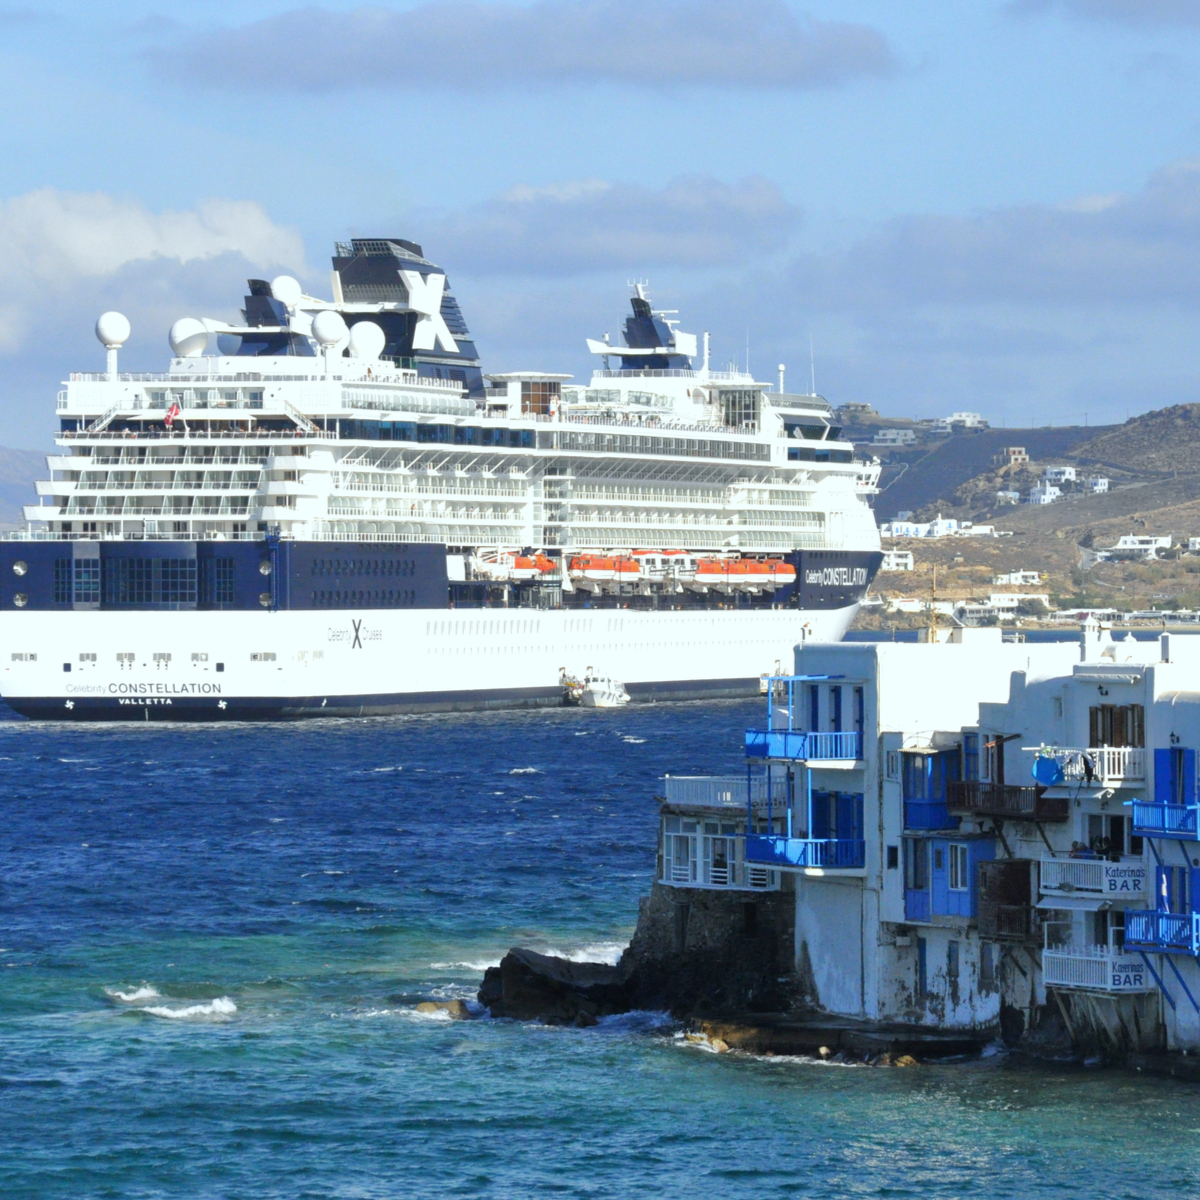 Celebrity Cruise ship by the harbour in Mykonos, Greece on the island.